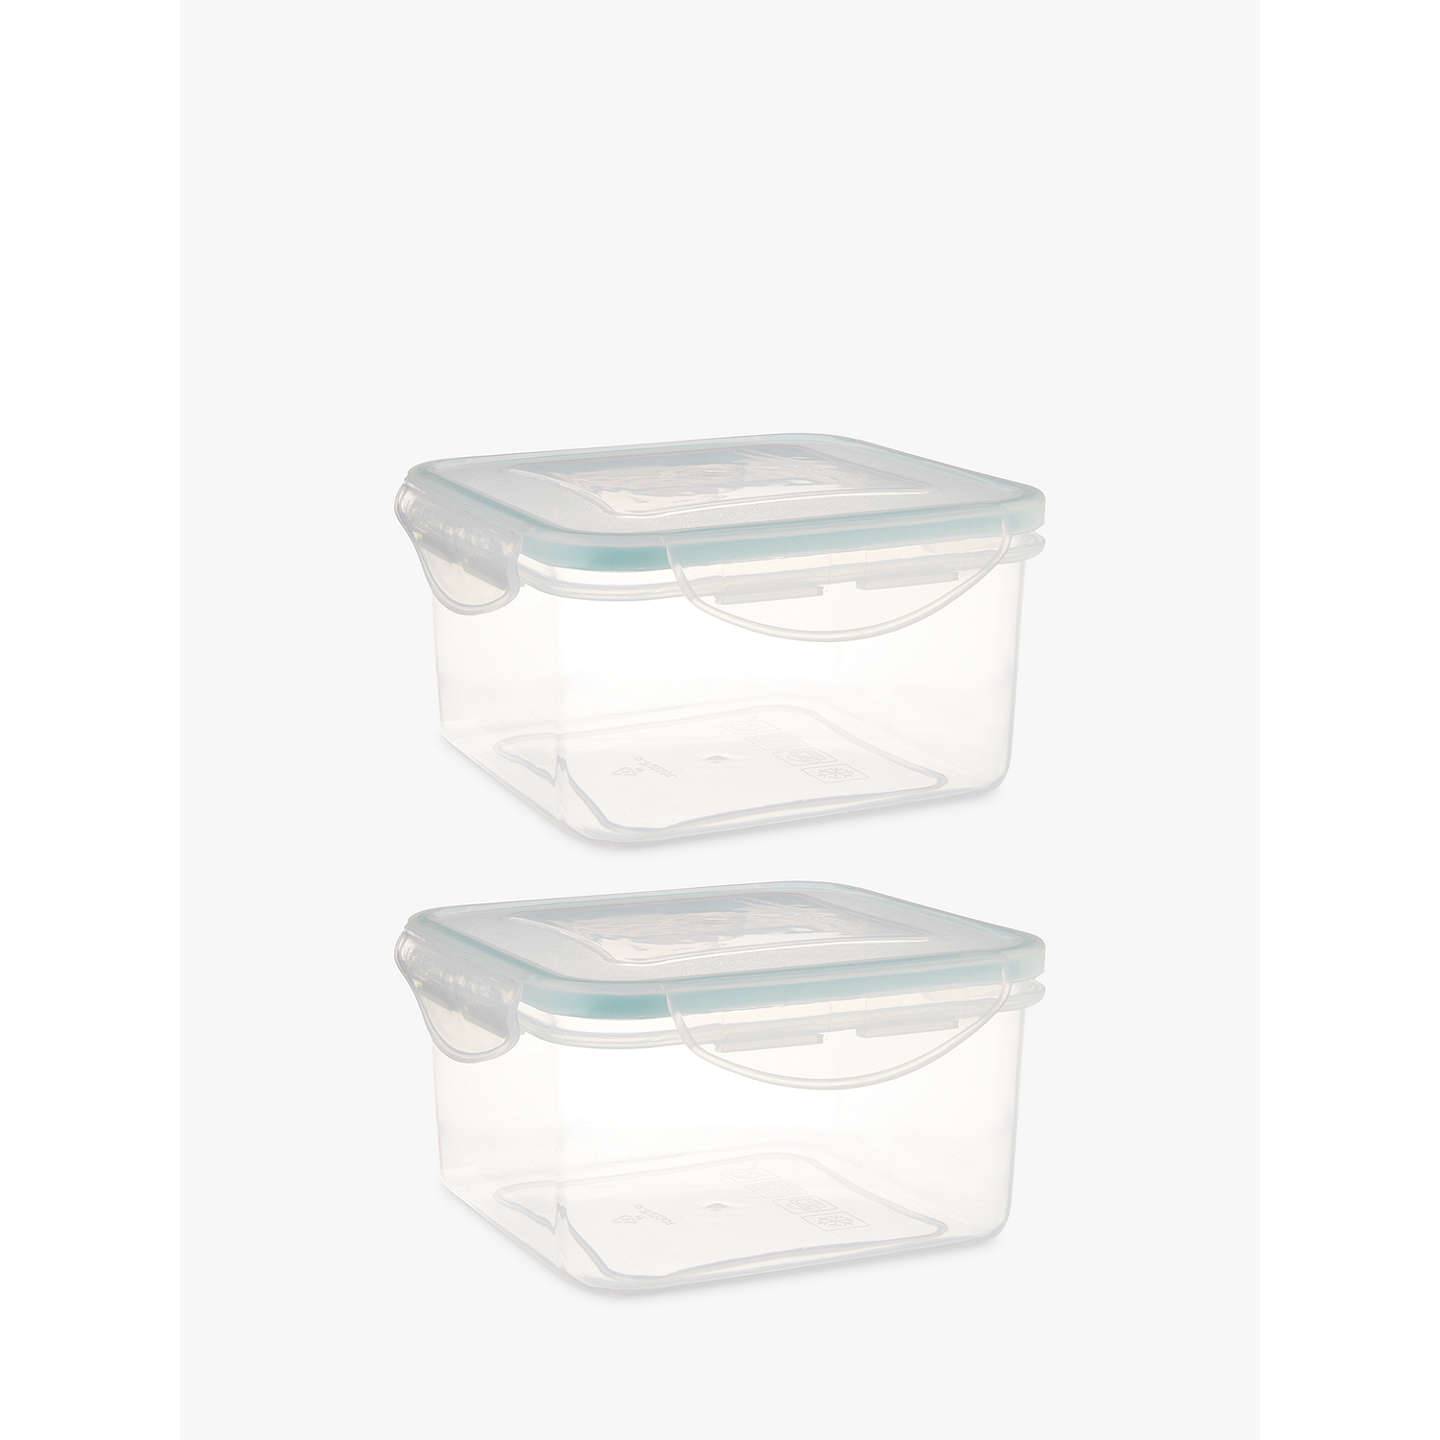 BuyJohn Lewis Polypropylene Storage Containers Set of 2 Clear 700ml Online at johnlewis ...  sc 1 st  John Lewis & John Lewis Polypropylene Storage Containers Set of 2 Clear 700ml ...